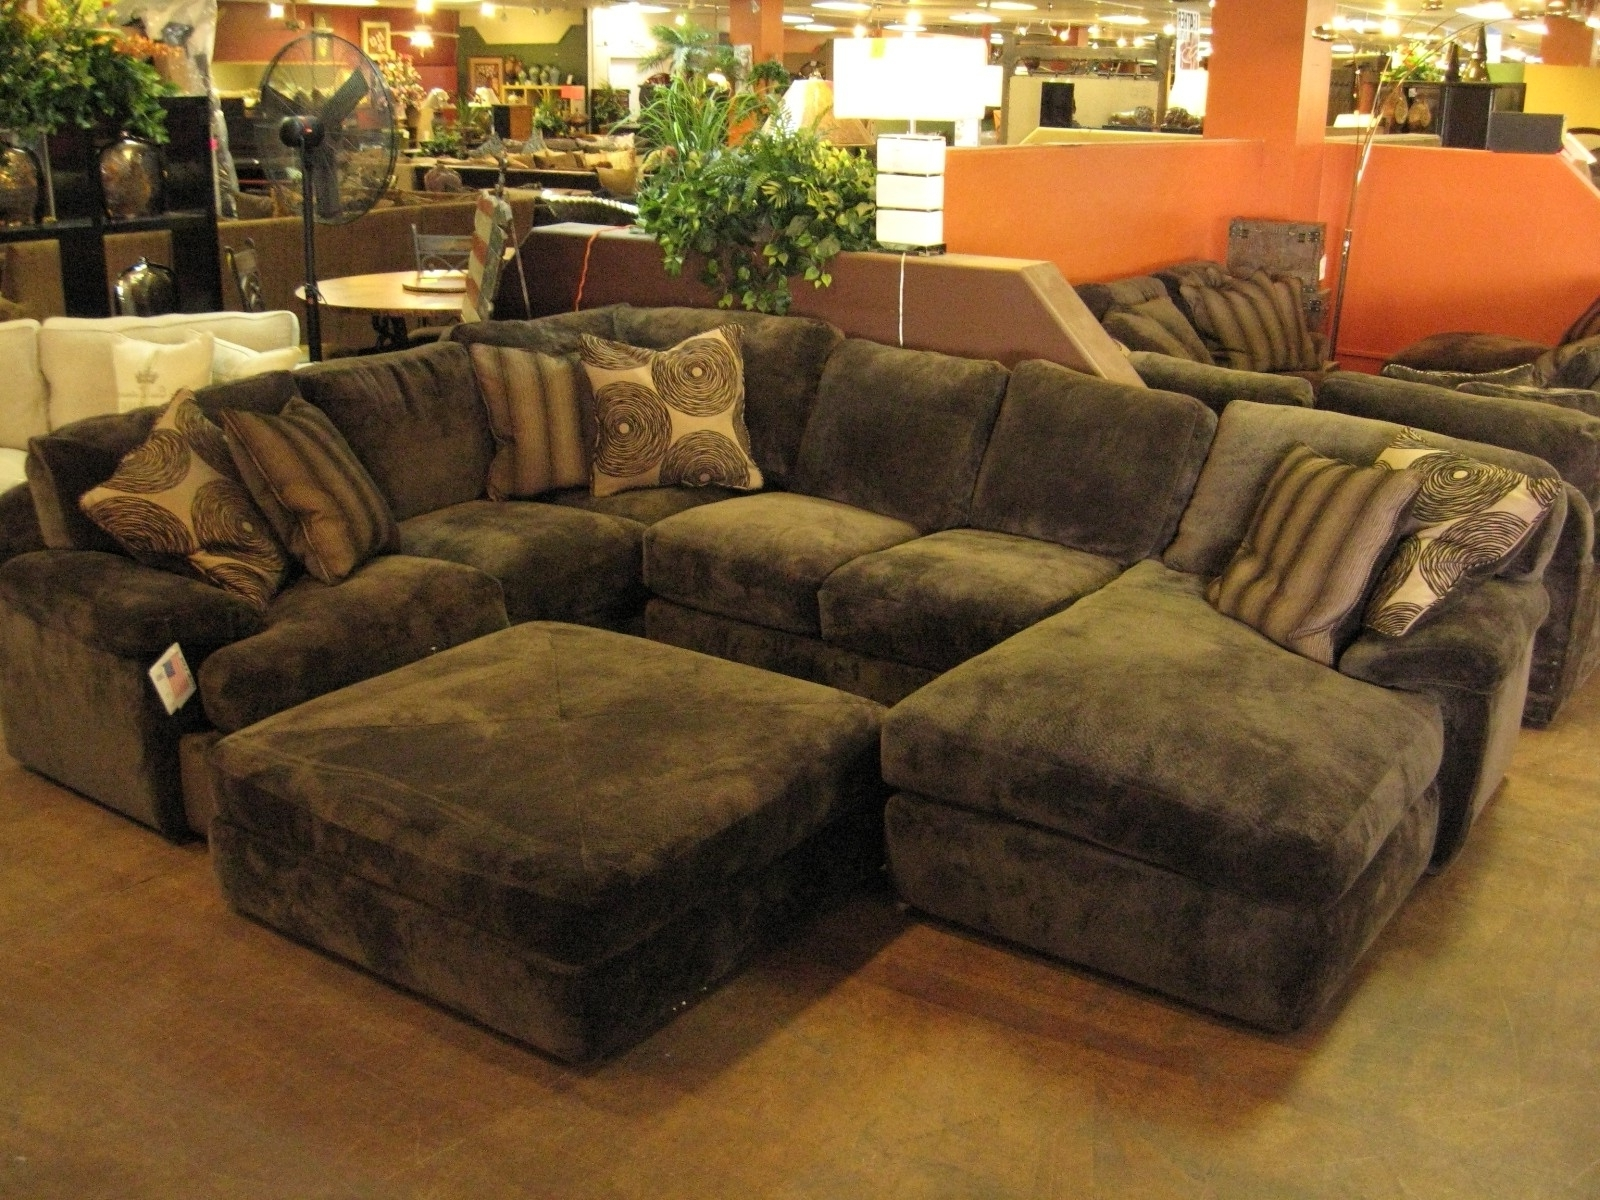 Most Popular Photos Sectional Sofas Jacksonville Fl – Buildsimplehome Pertaining To Jacksonville Fl Sectional Sofas (View 16 of 20)